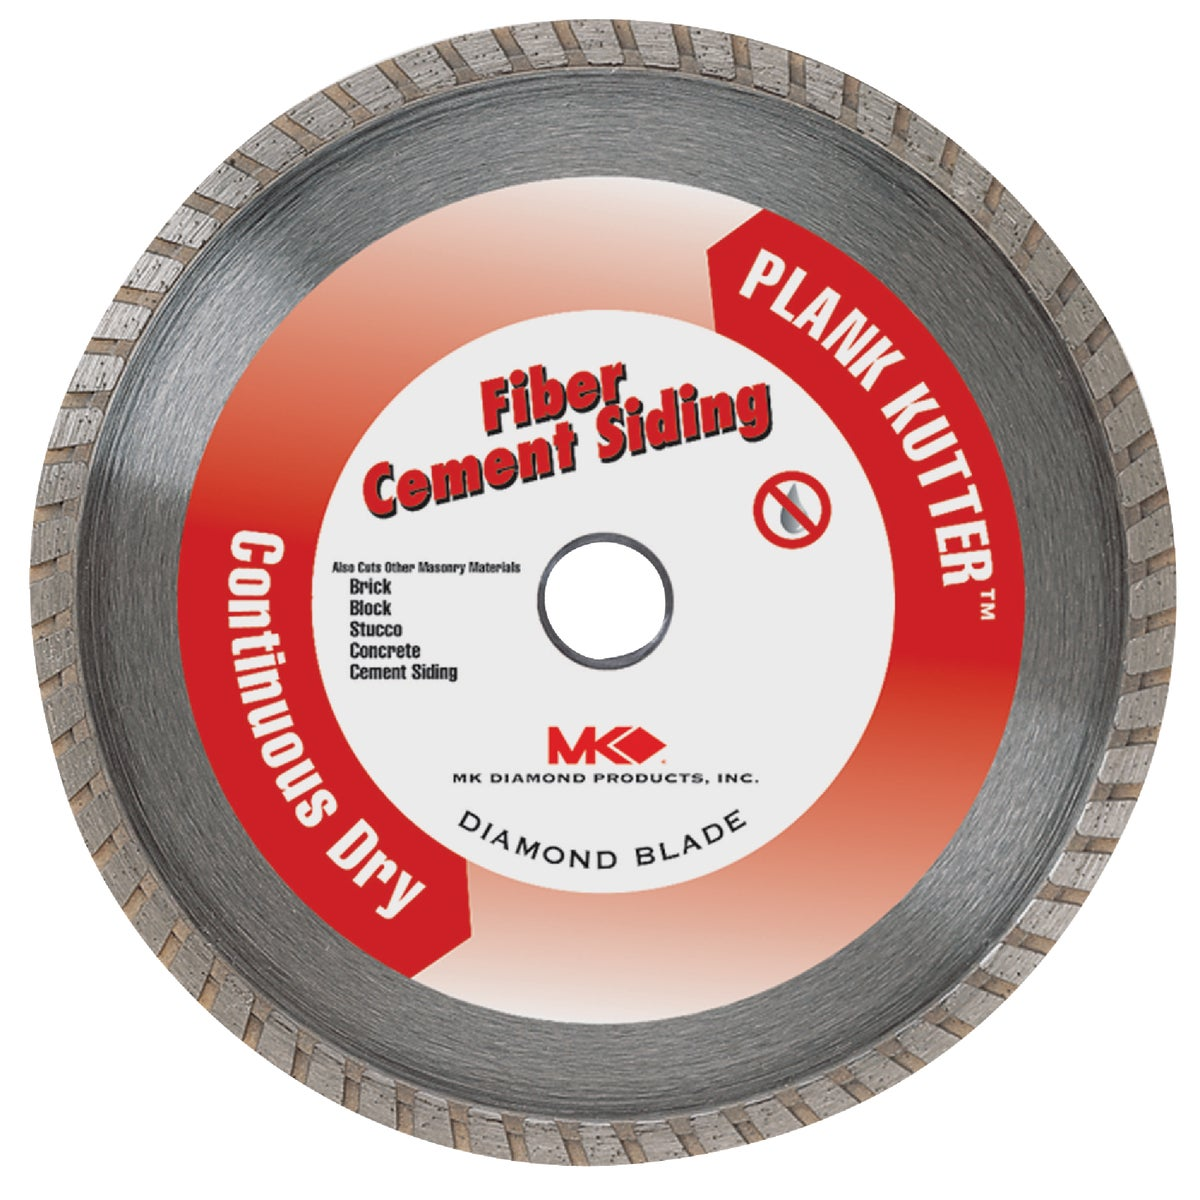 "4.5"" FIBER CEMENT BLADE - 157045 by M K Diamond Products"